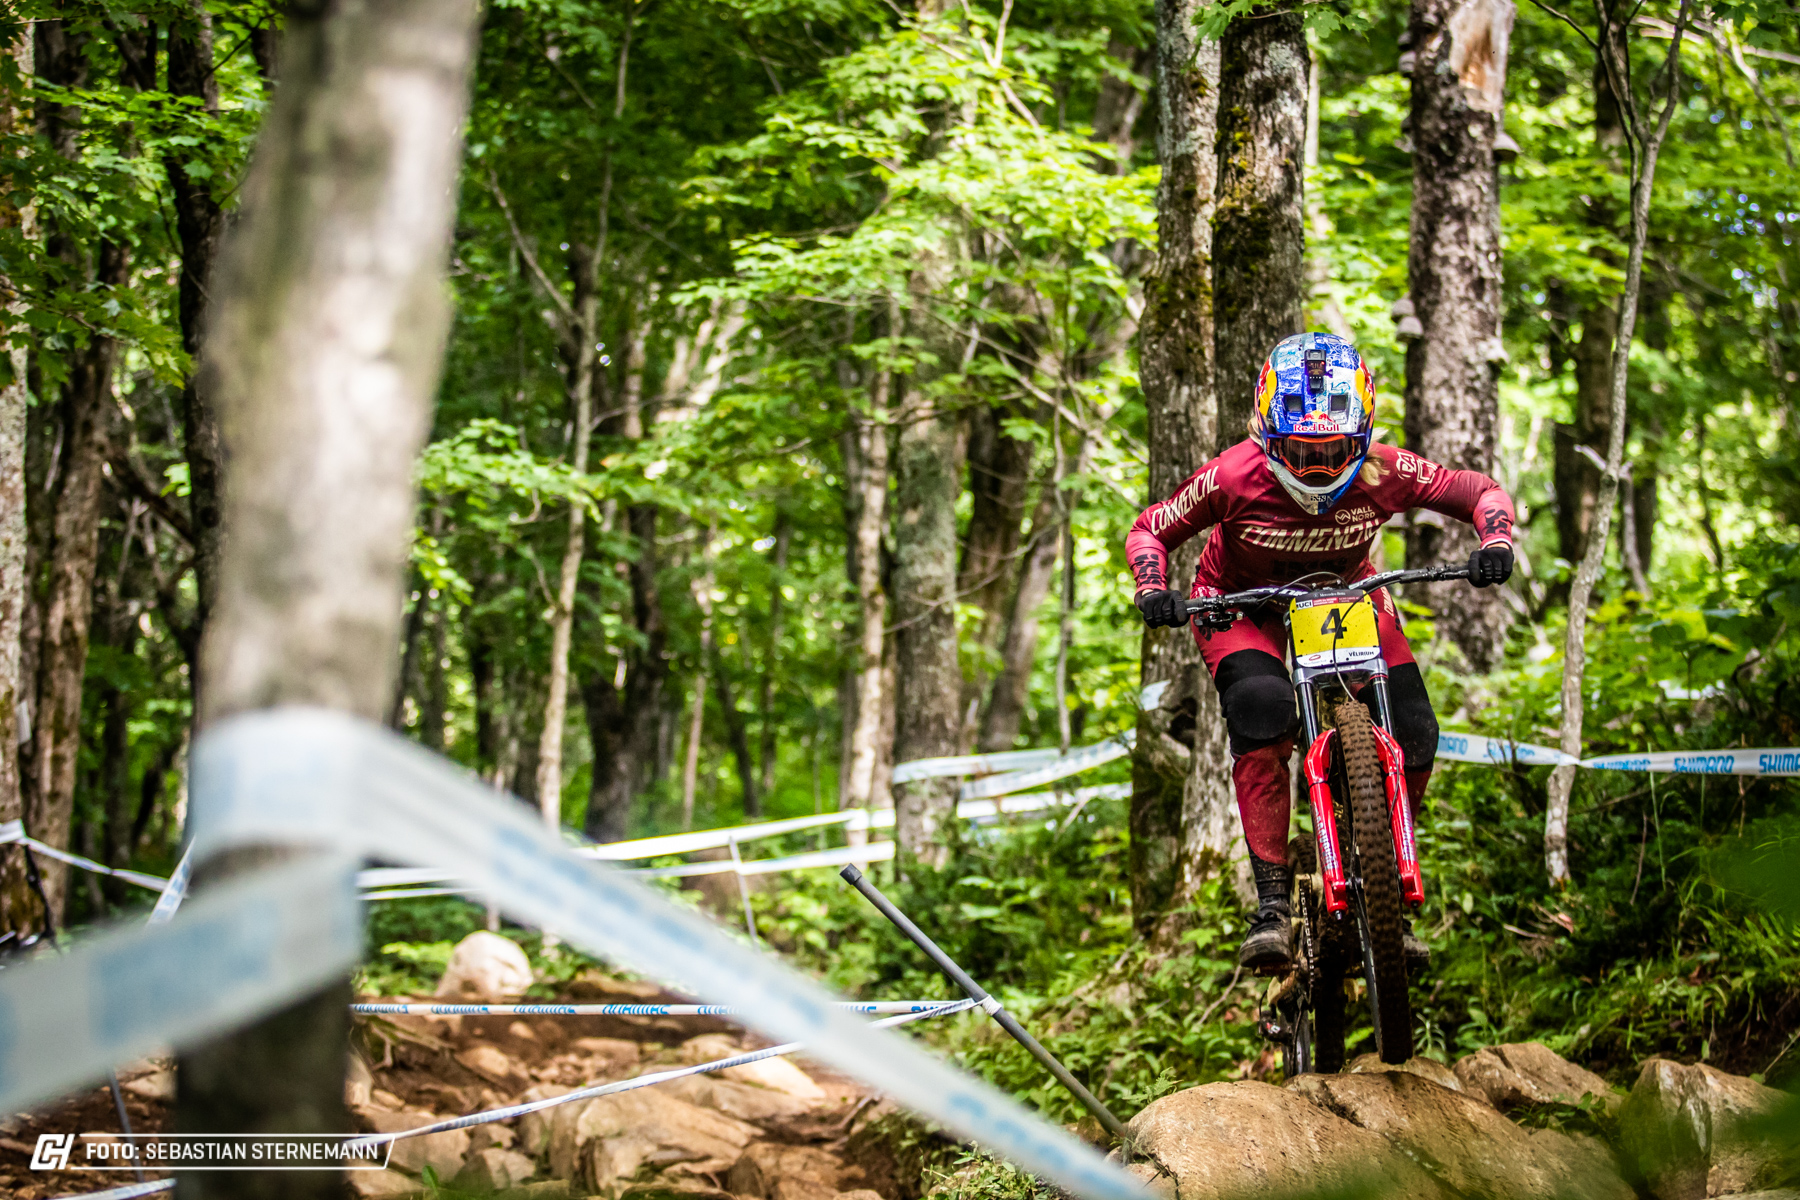 UCI DHI Worldcup MSA Friday 411 by Sternemann